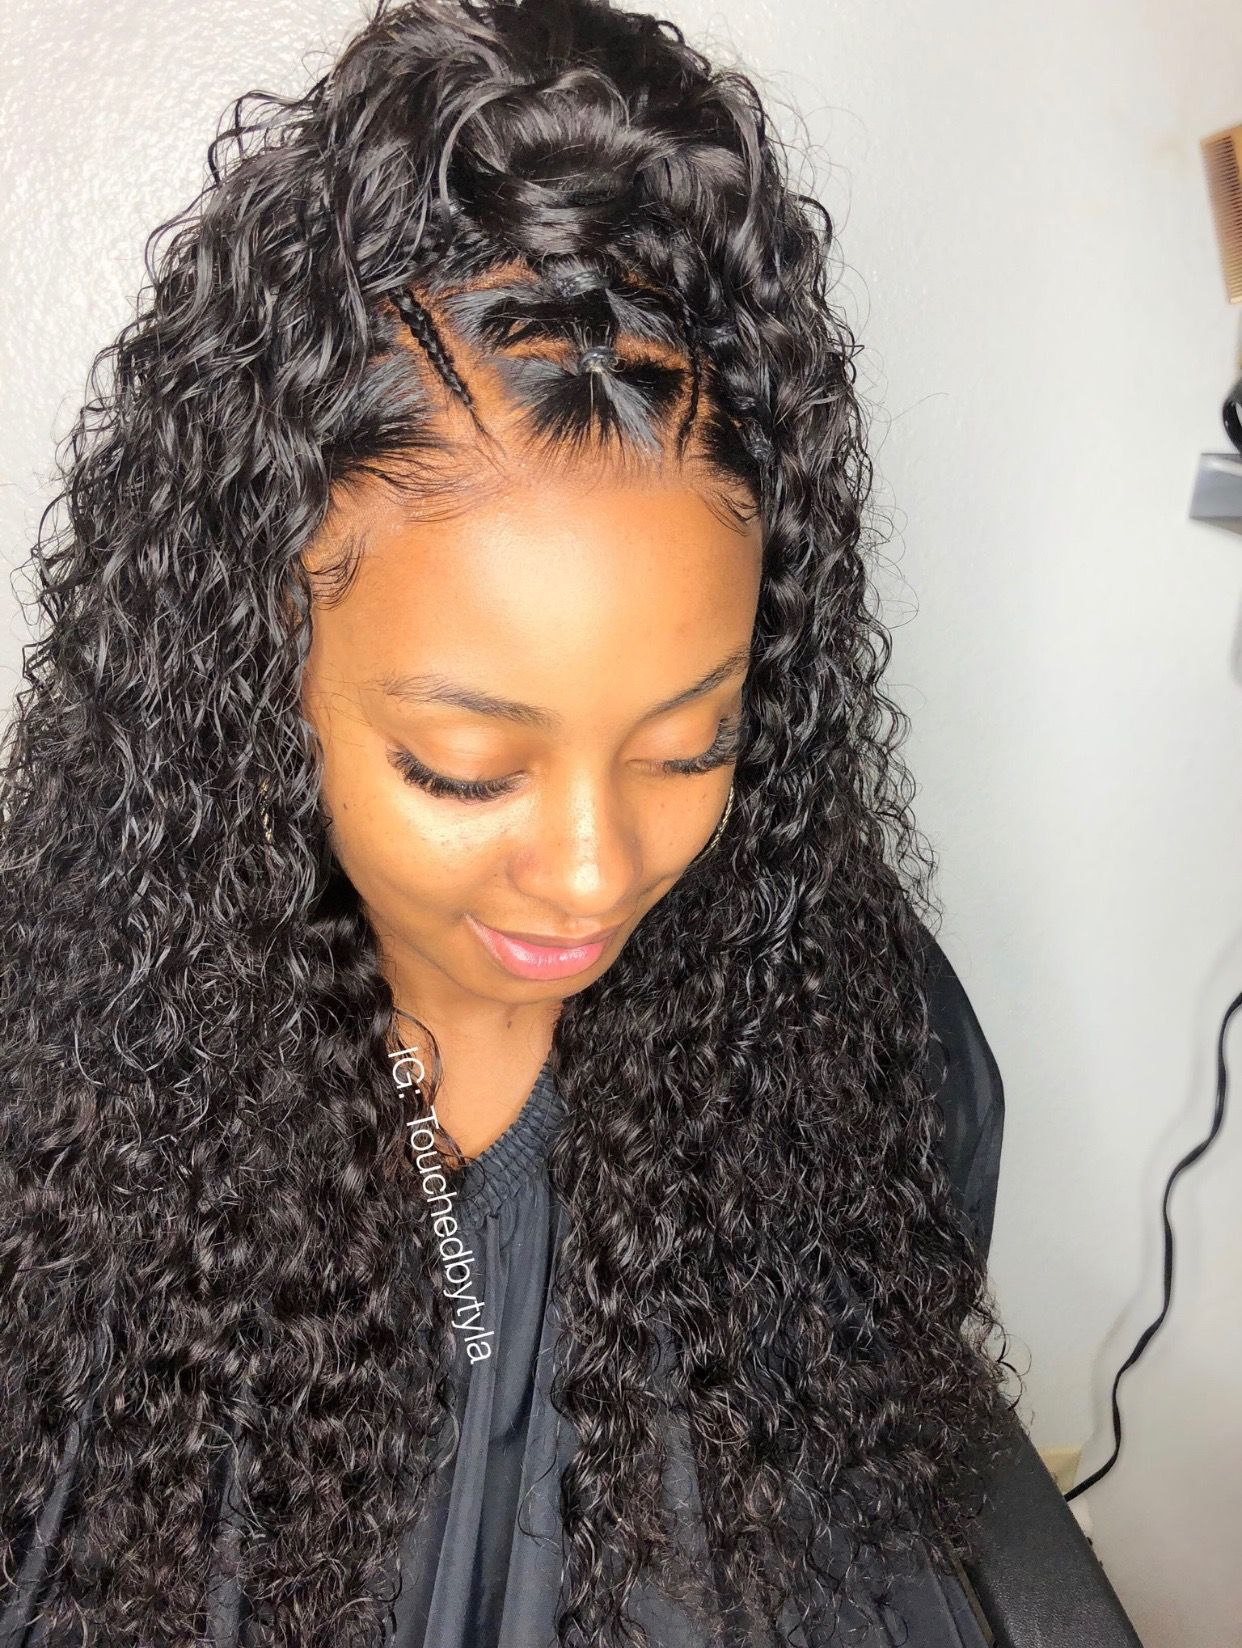 29+ Deep wave hairstyles with leave out ideas